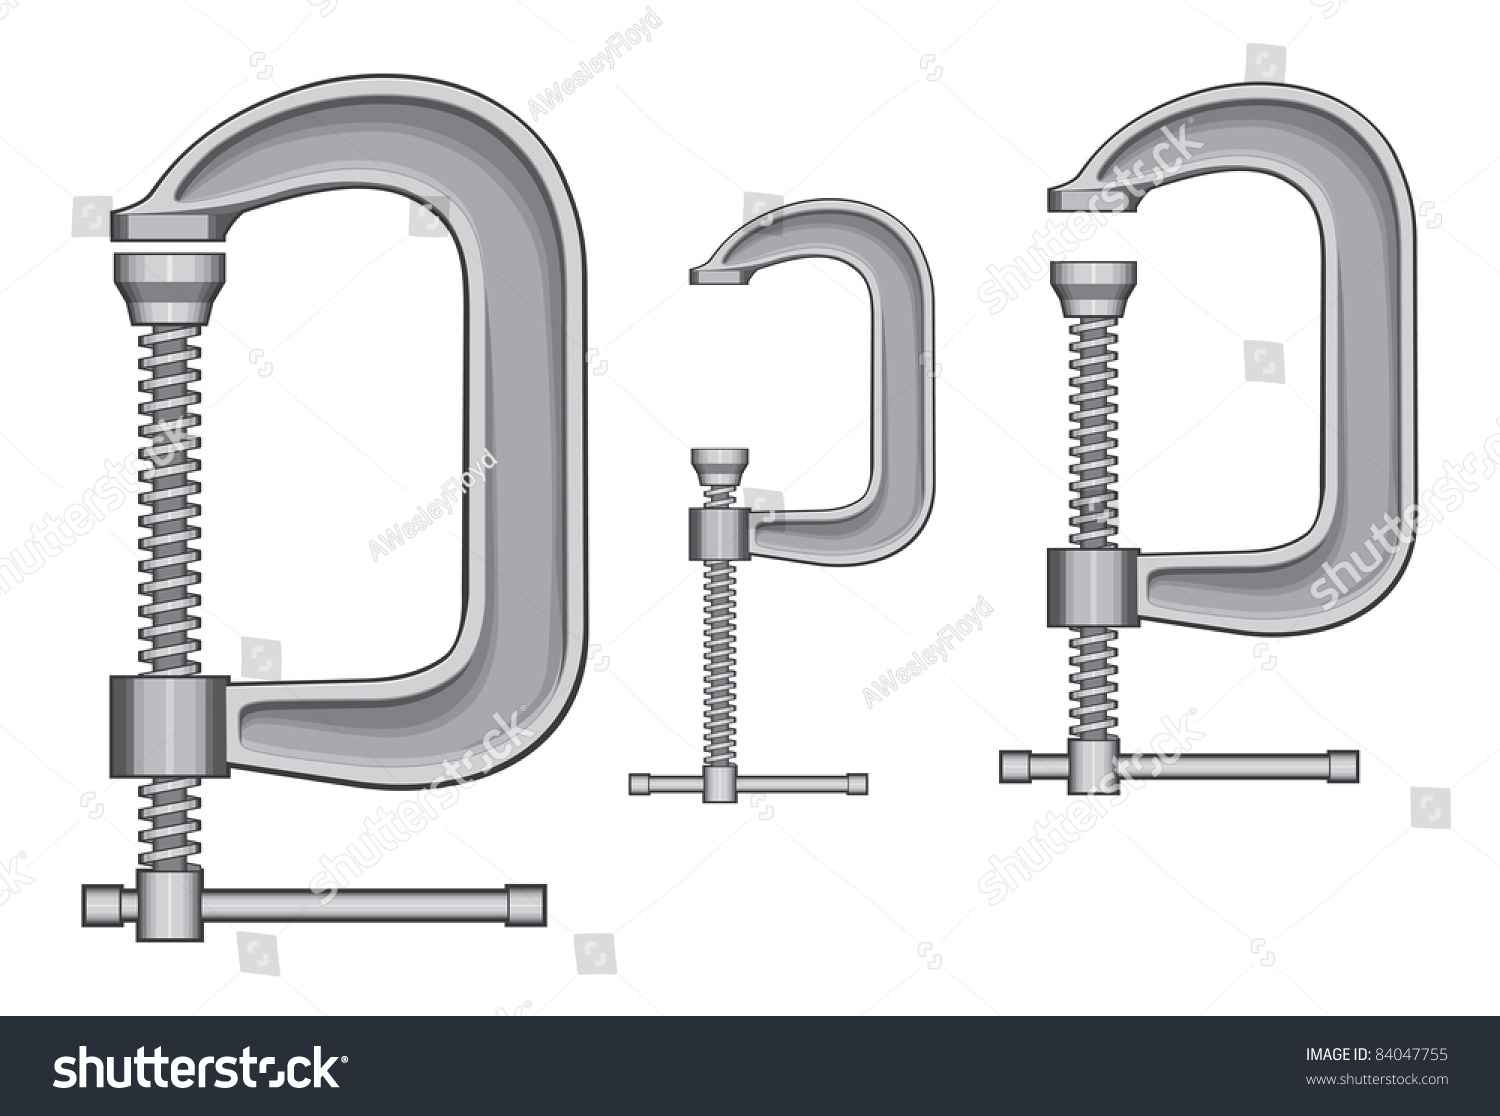 C Clamp Illustration Three Sizes Clamps Stock Is An Of